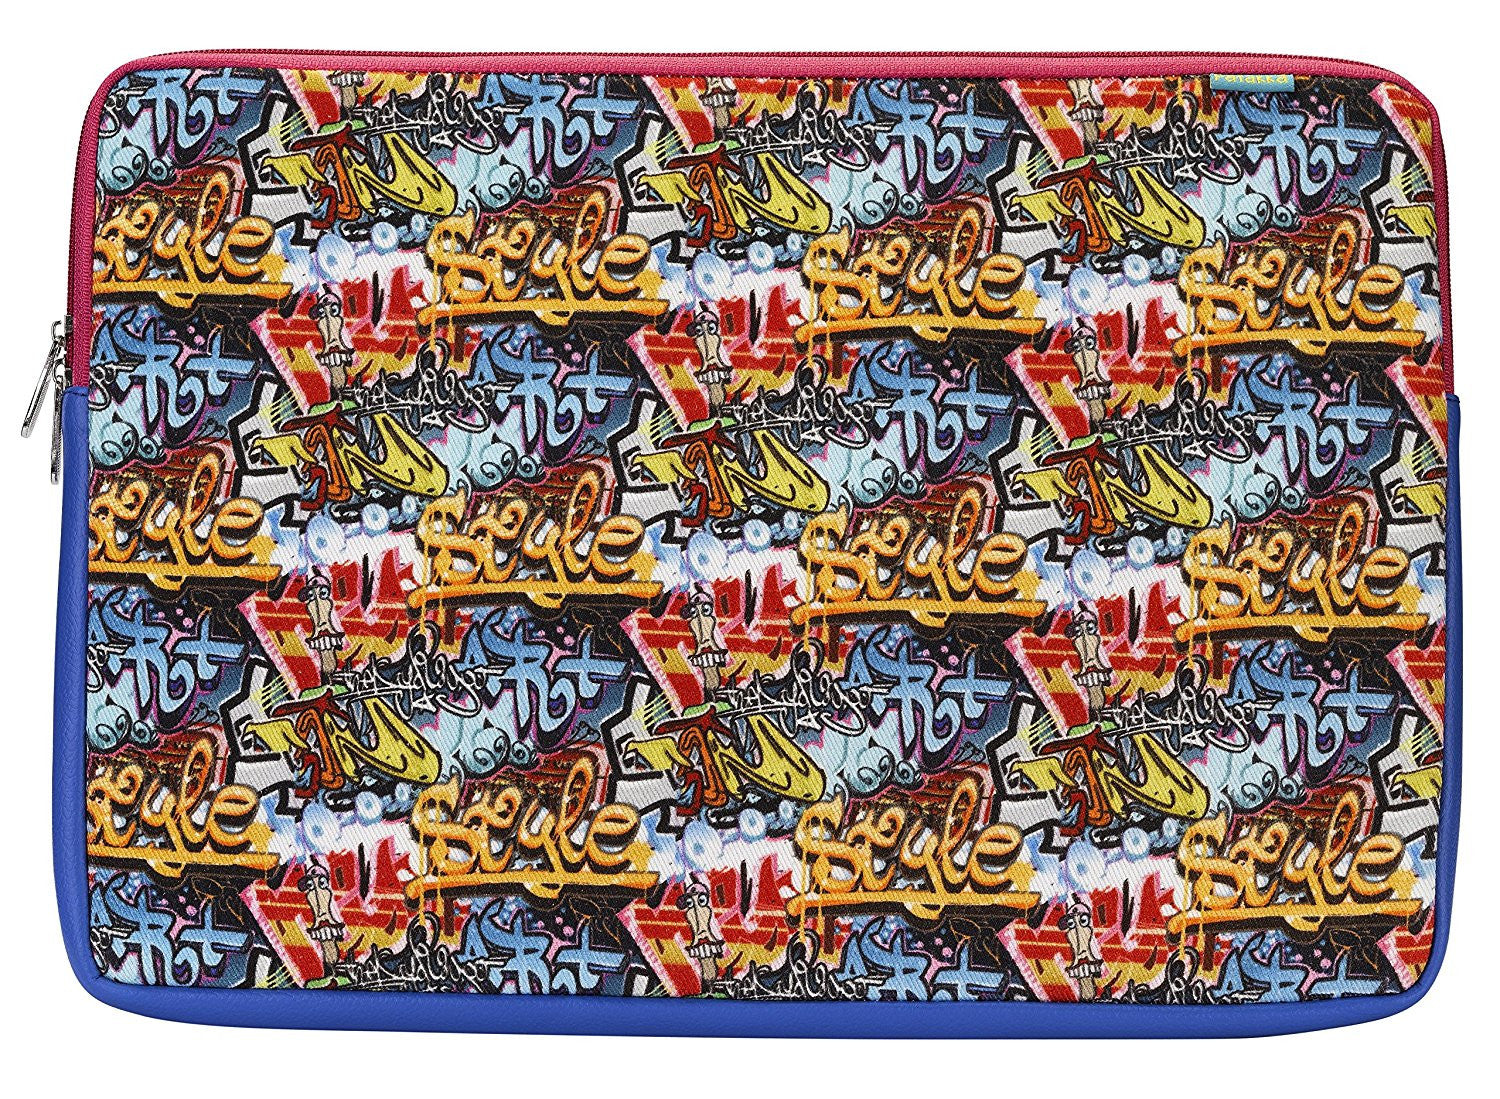 "Fatakka Art Graffiti Laptop Sleeve 14"" Inch"